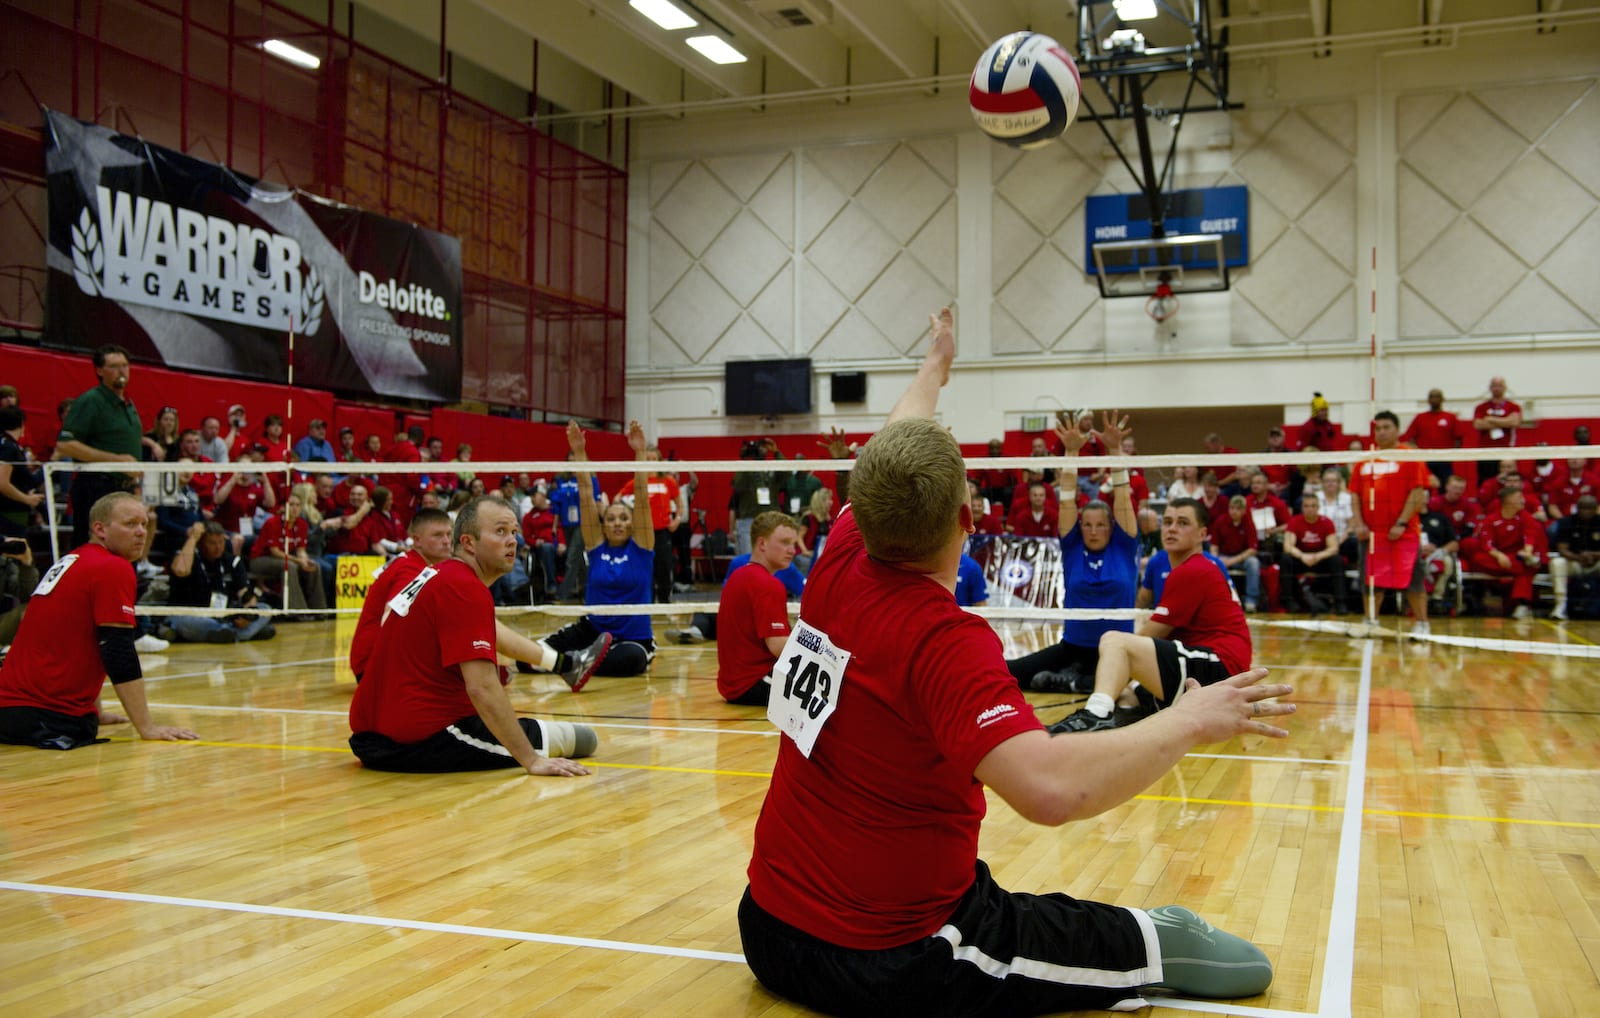 Volleyball at the Olympic Training Center.